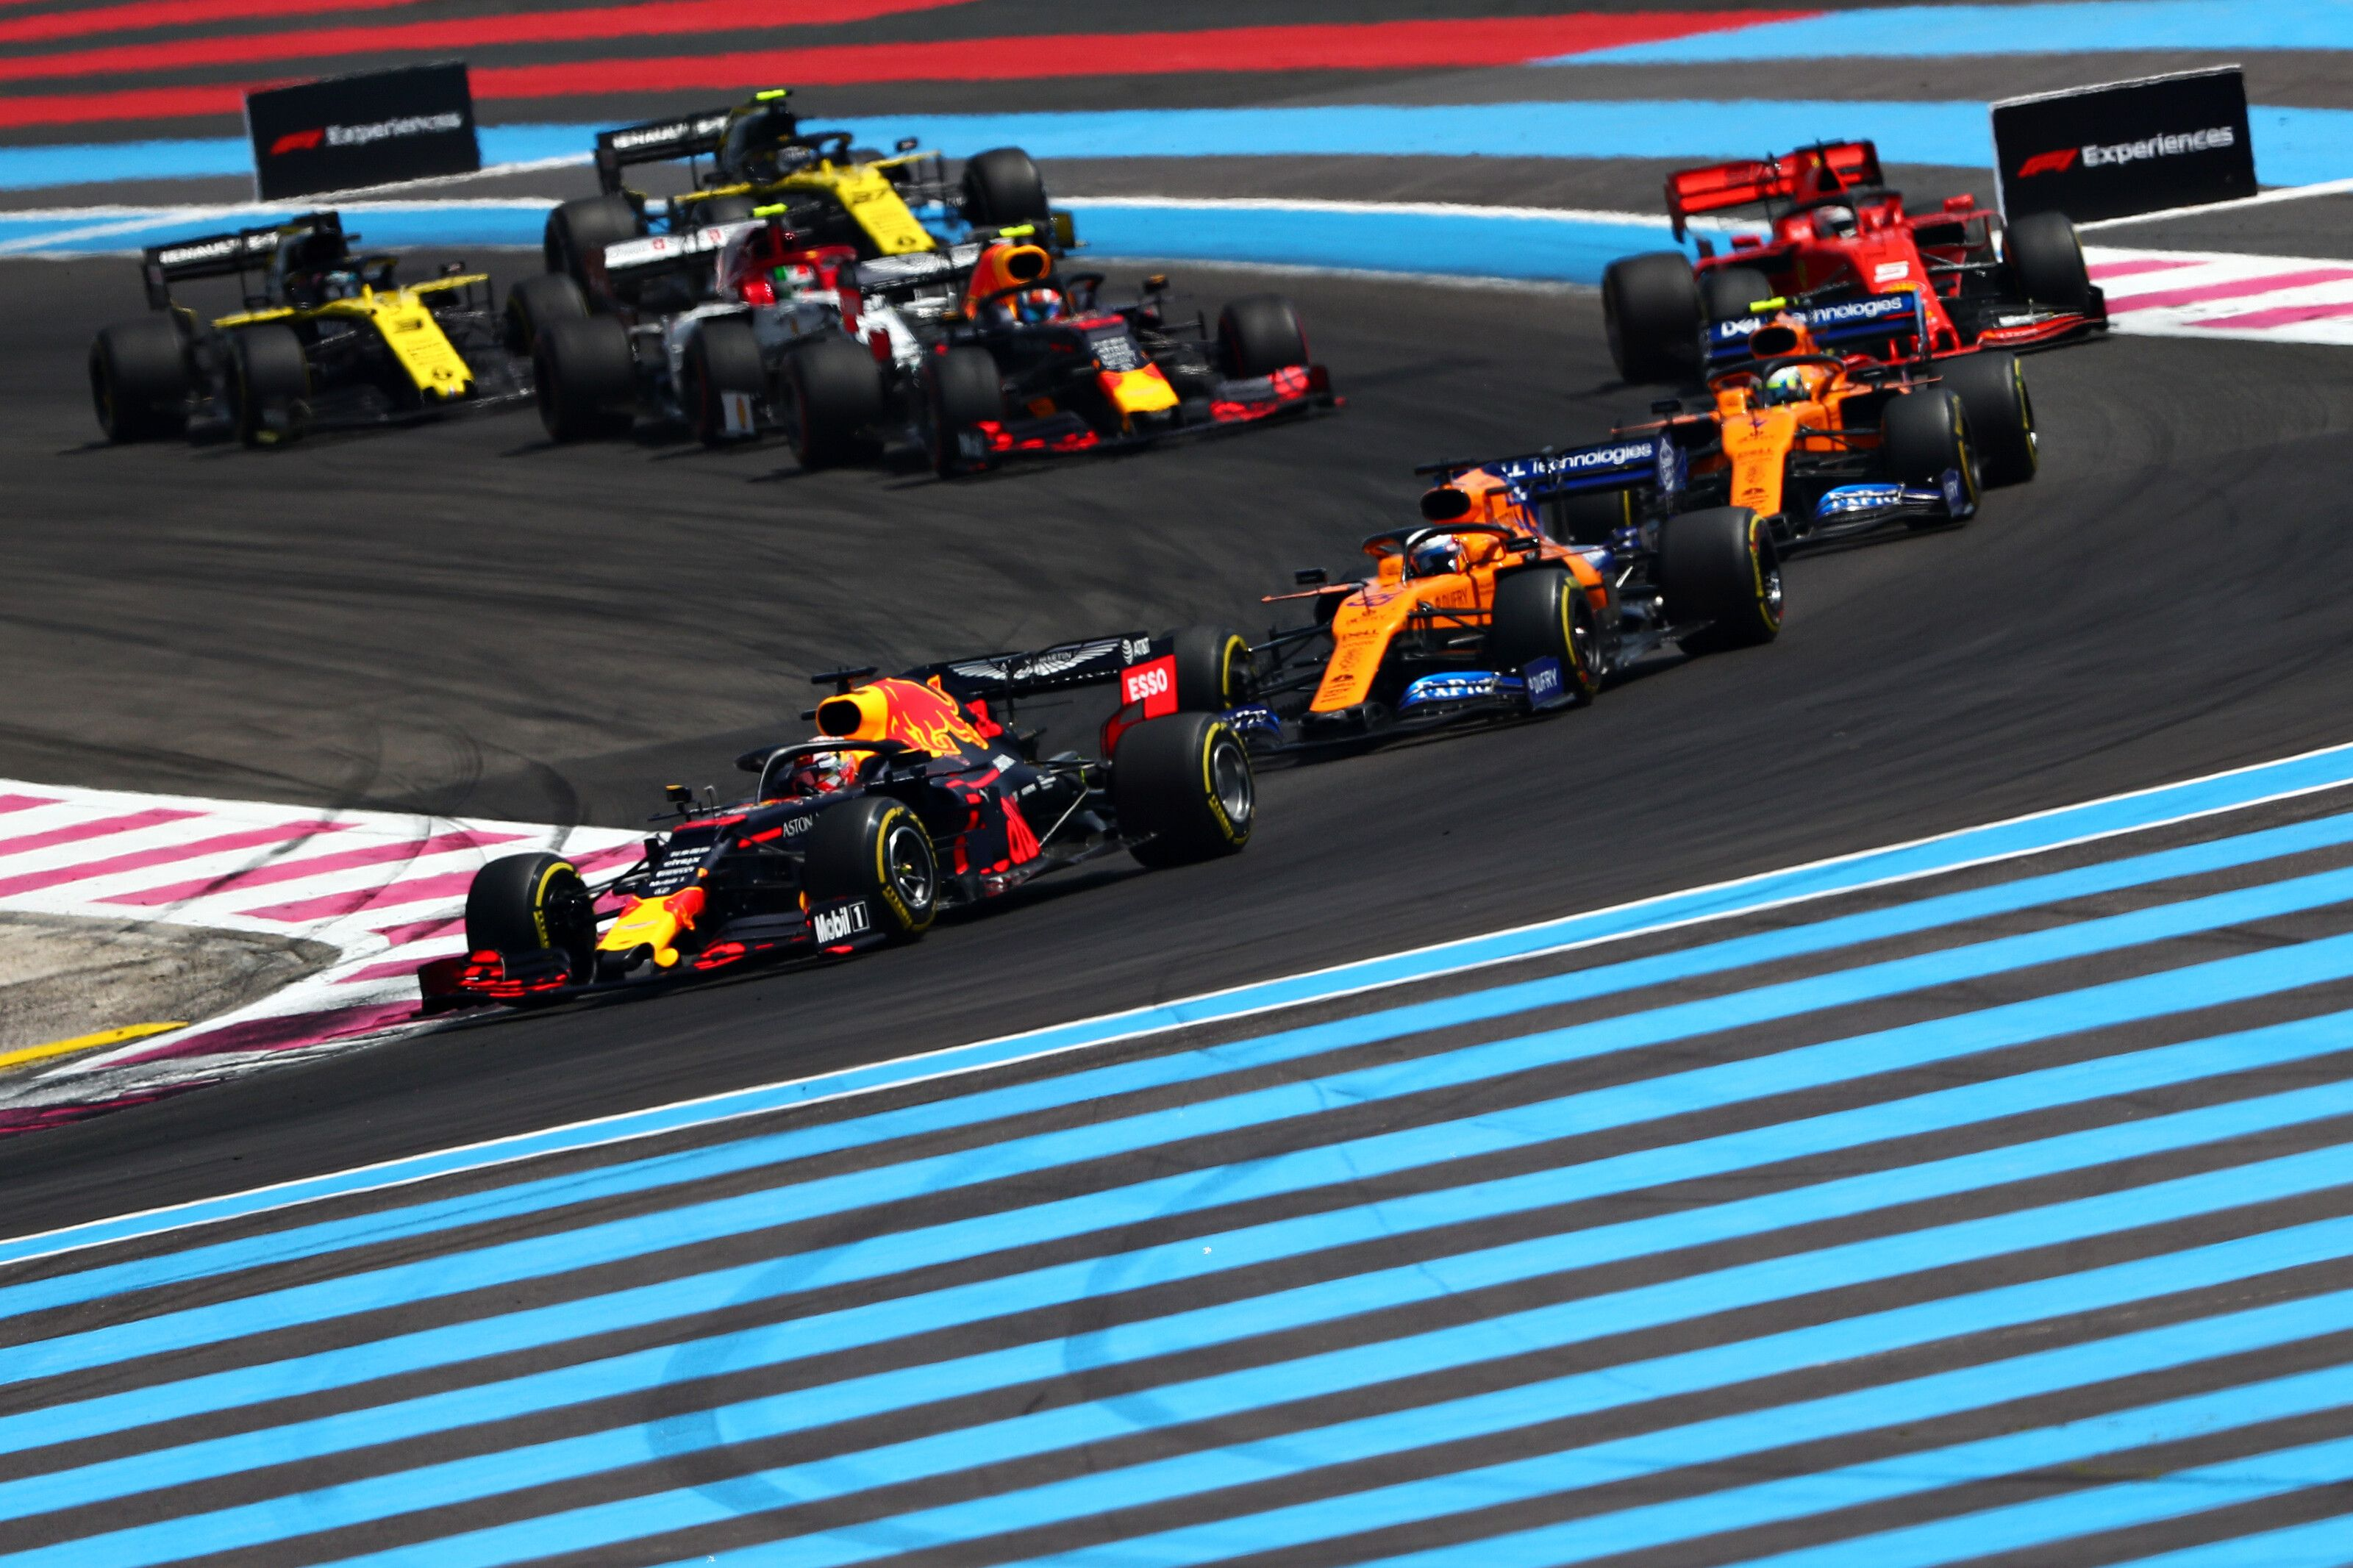 Max Verstappen, Pierre Gasly in the pack